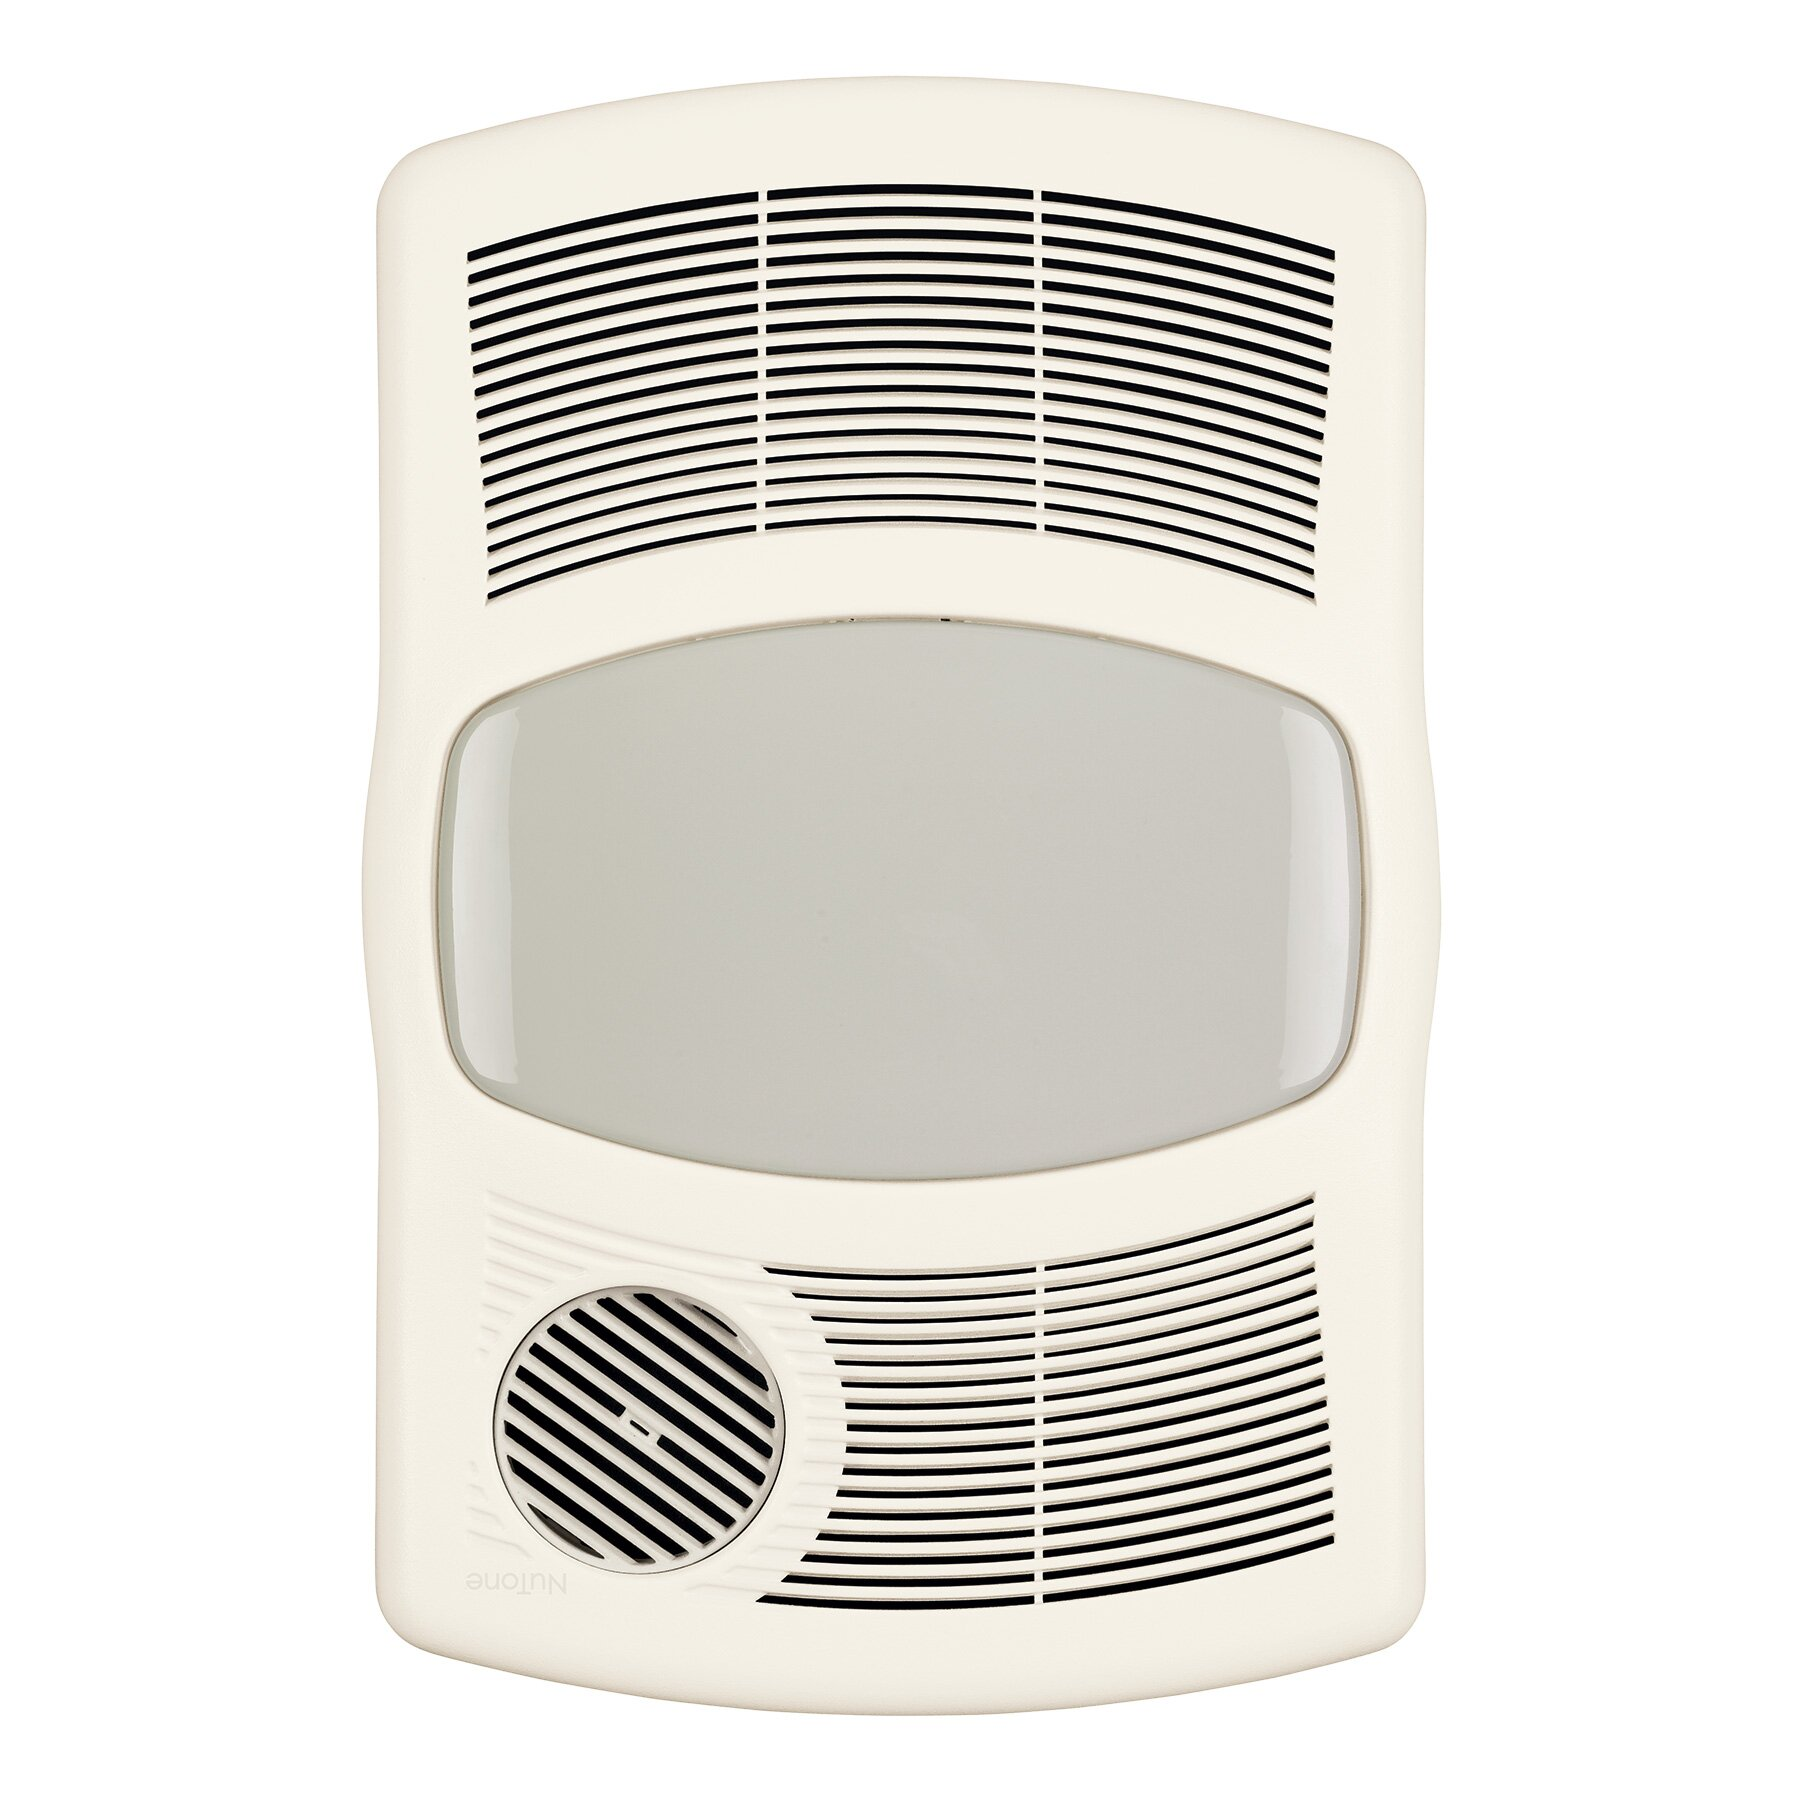 Bathroom Ventilation Fans : Broan cfm exhaust bathroom fan with heater reviews